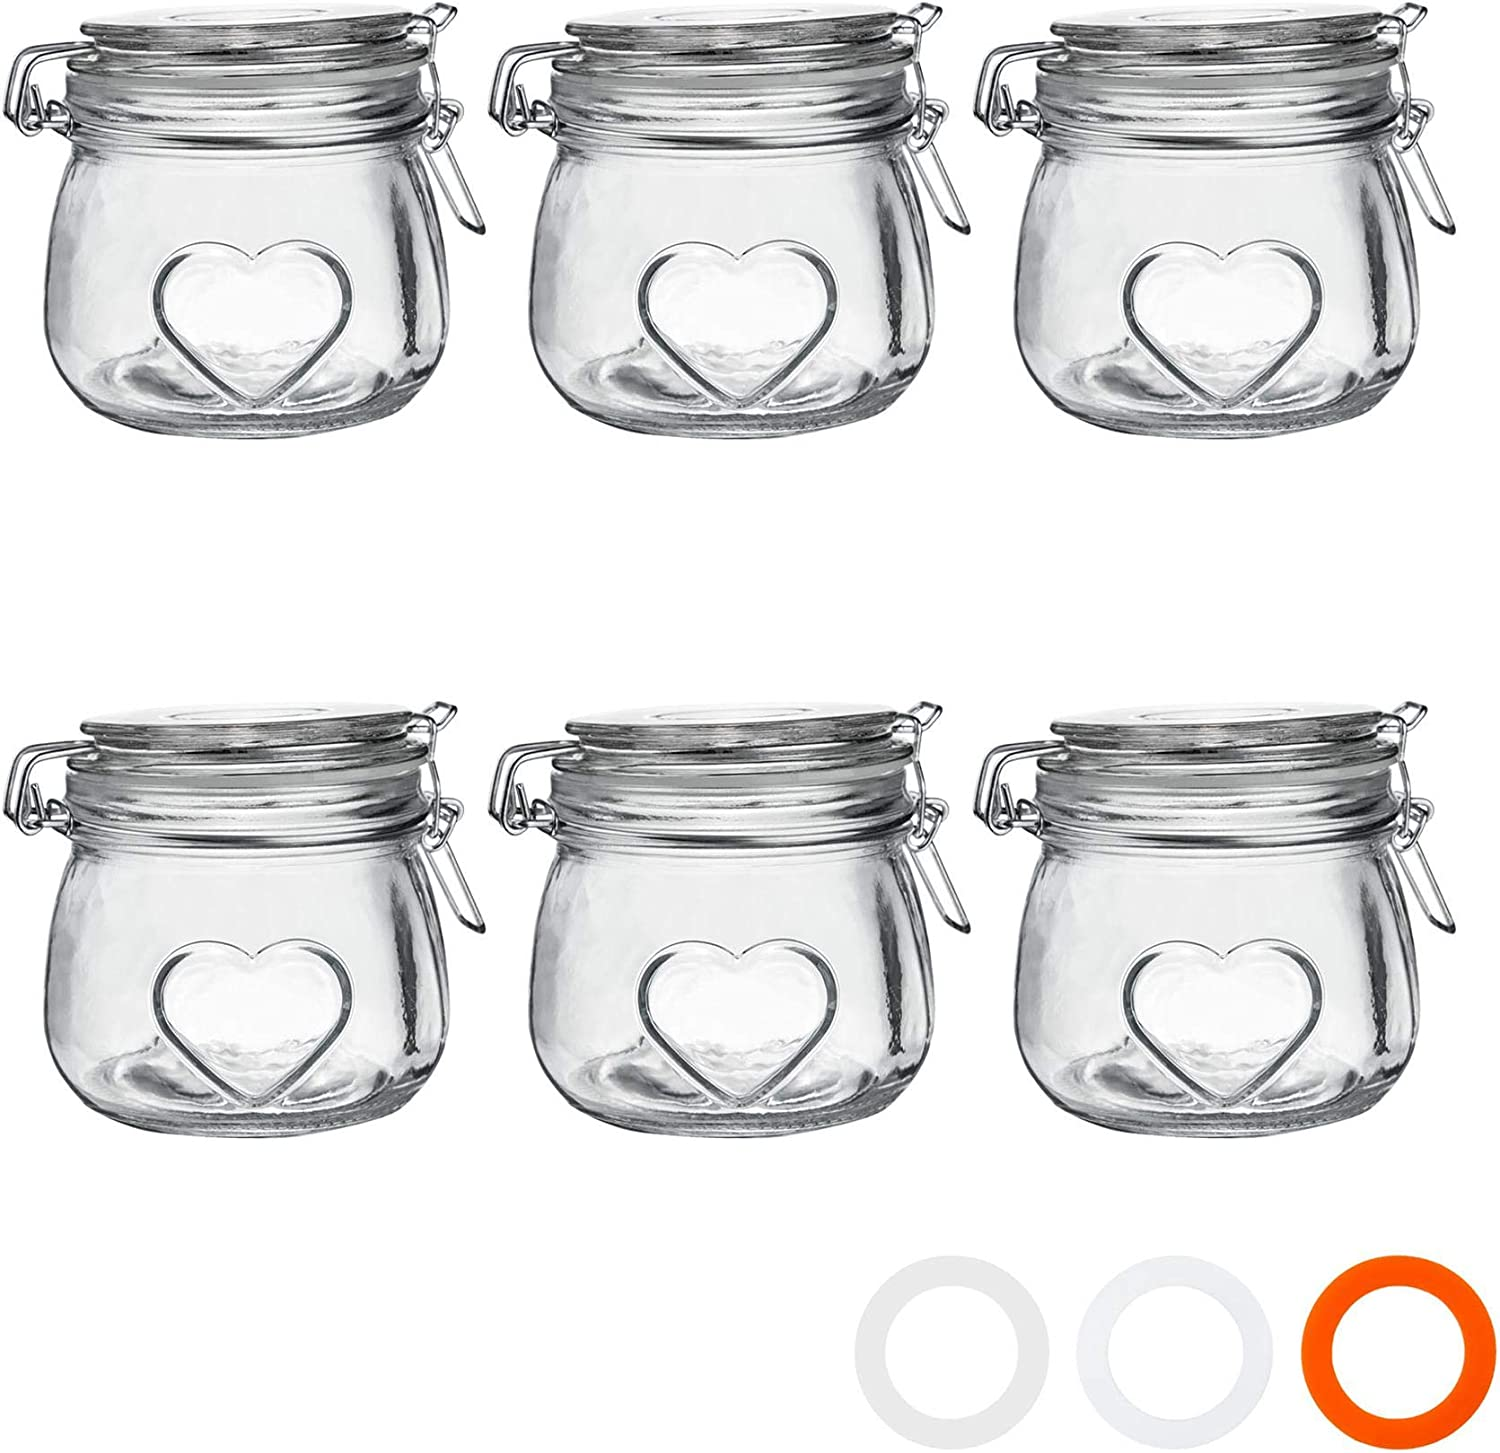 Nicola Spring Heart Glass Storage Jars with Airtight Clip Lid - 500ml Set - Clear Seal - Pack of 6